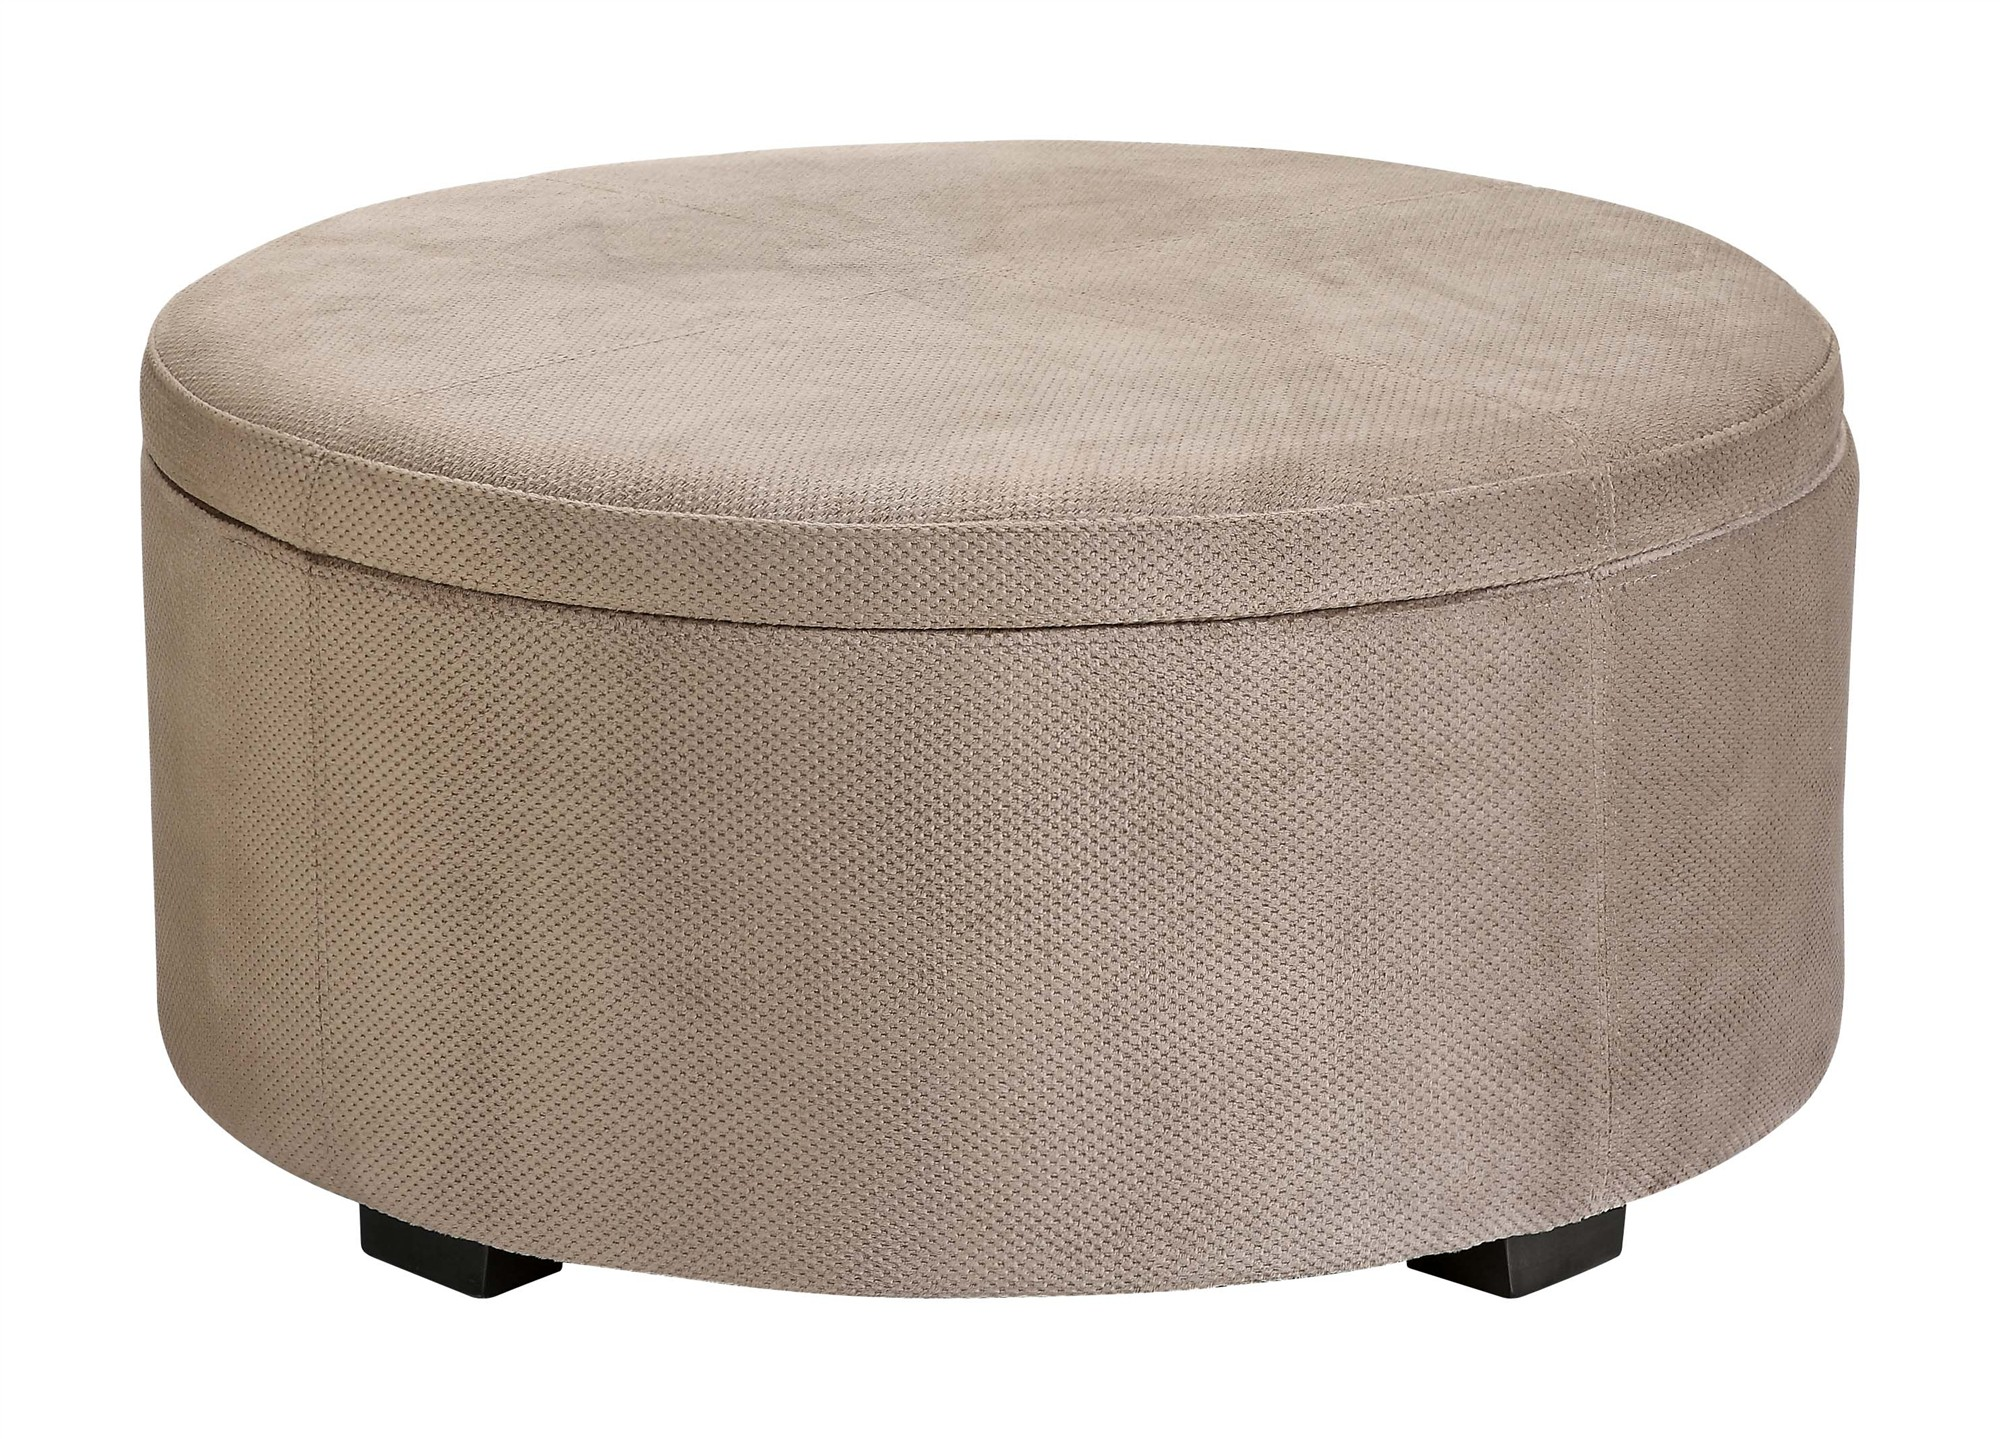 how to make a round storage ottoman